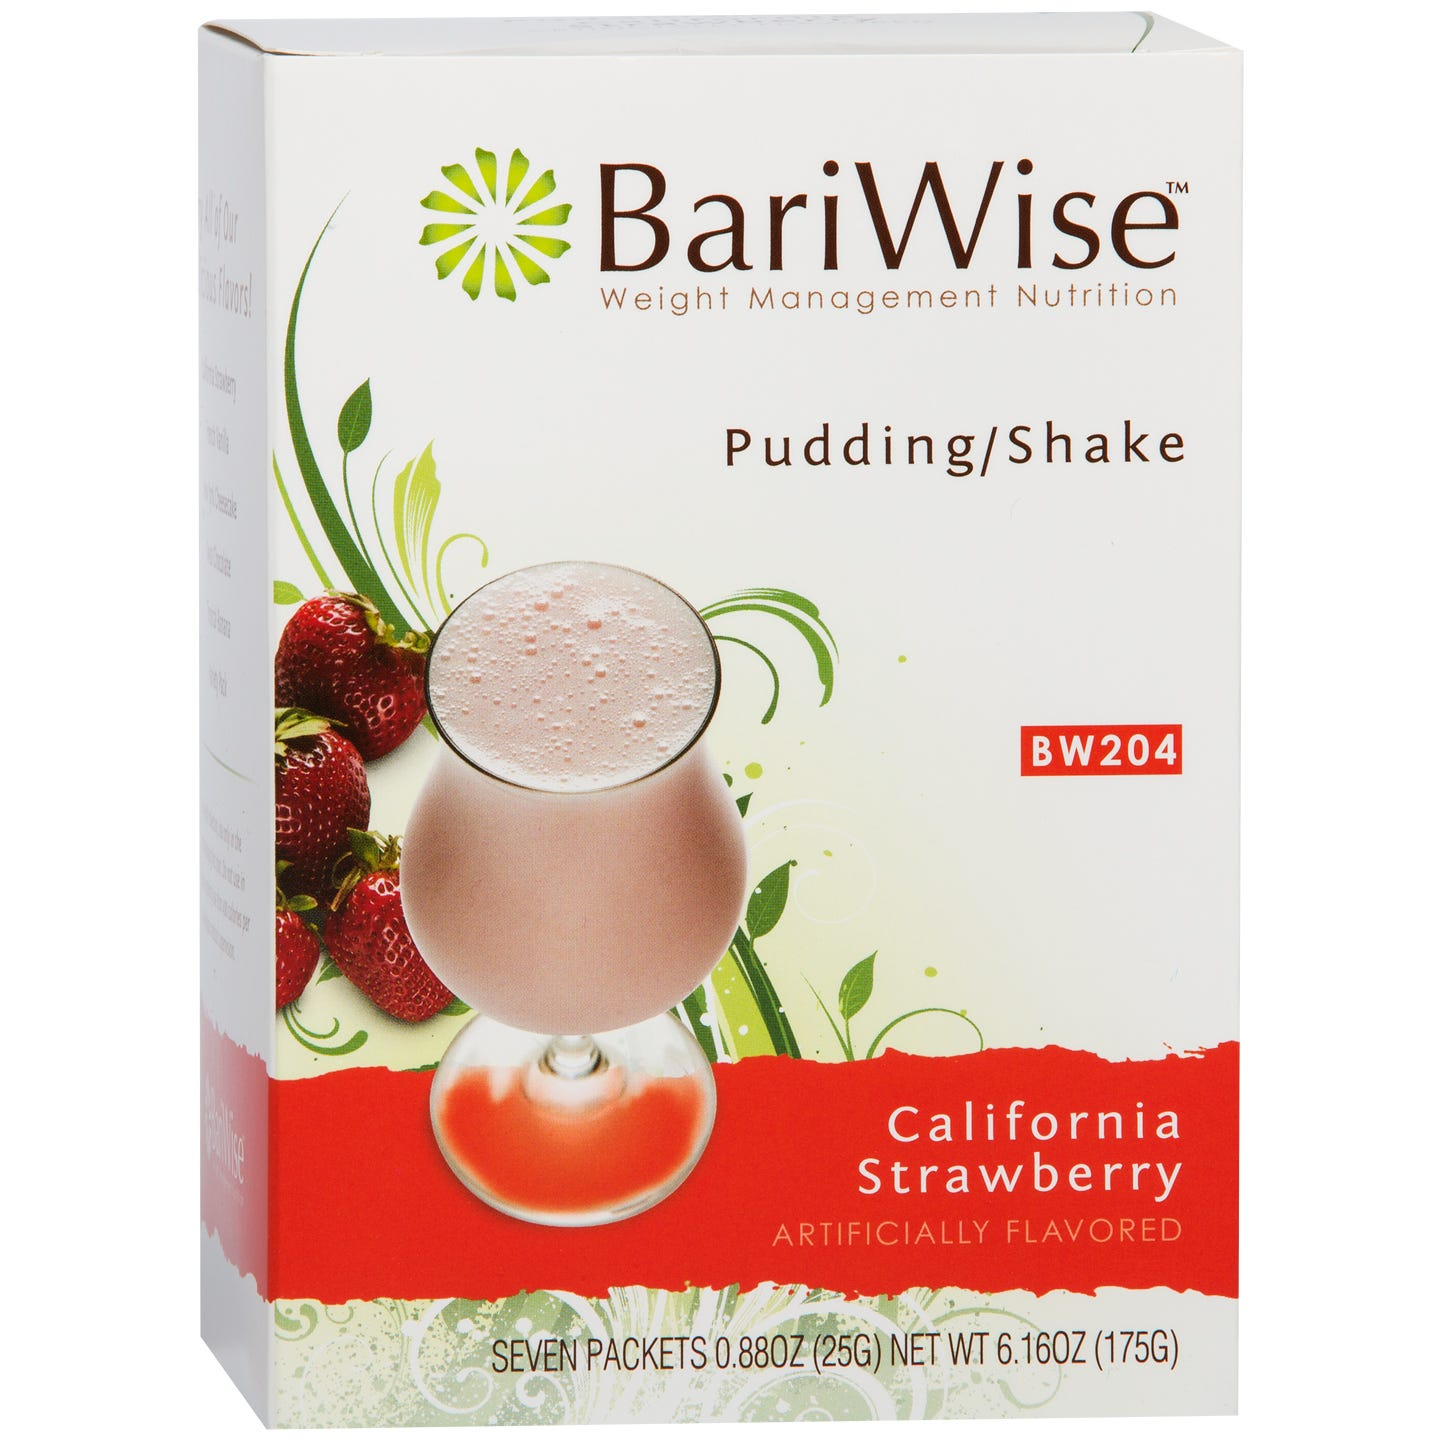 Protein Diet Pudding/Shake California Strawberry (7 ct) - BariWise - Rapid Diet Weight Loss Products Shop